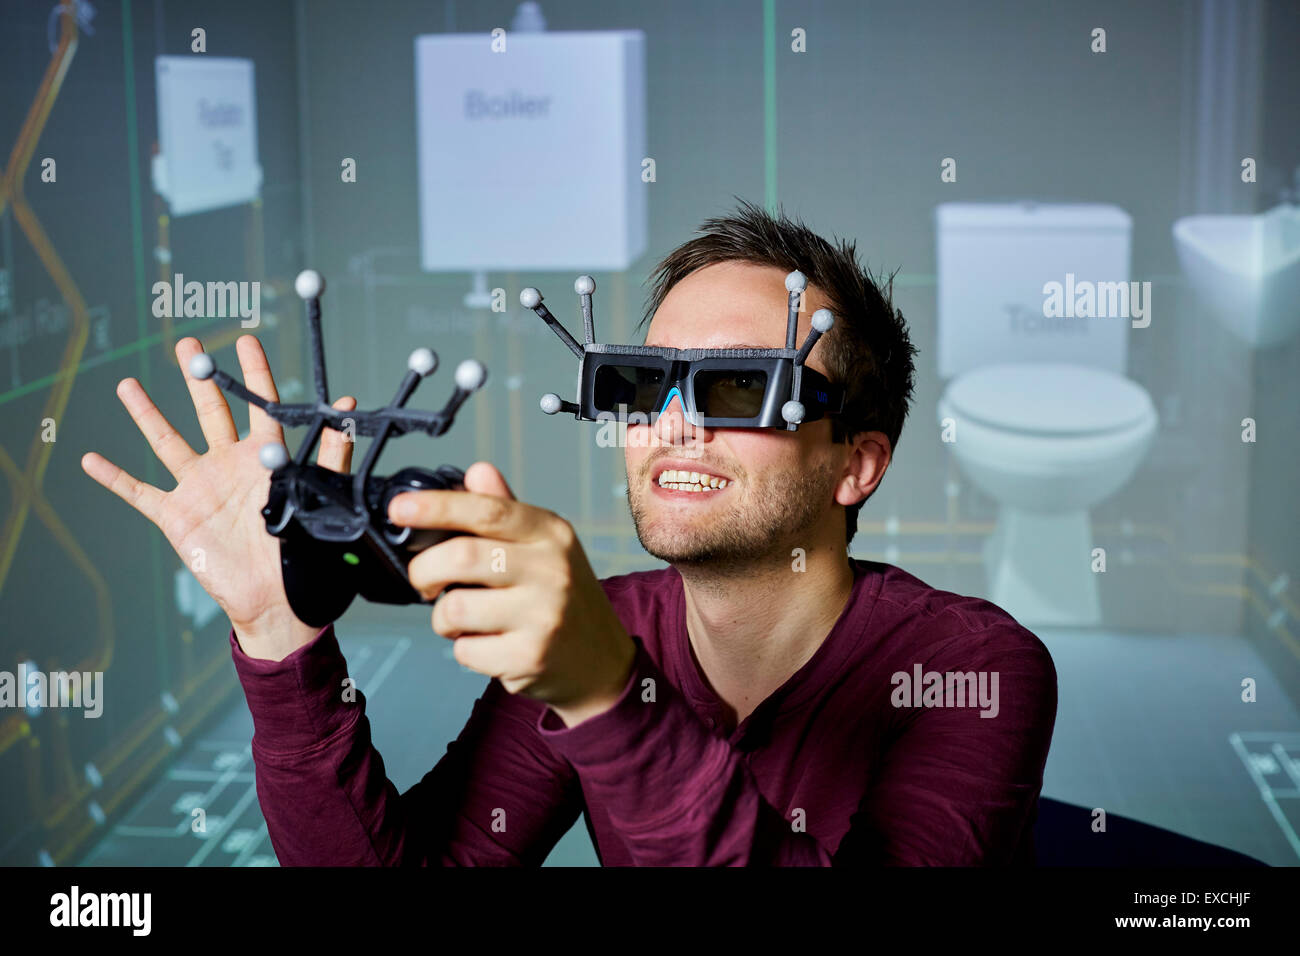 augmented reality male man playing with glasses and handset